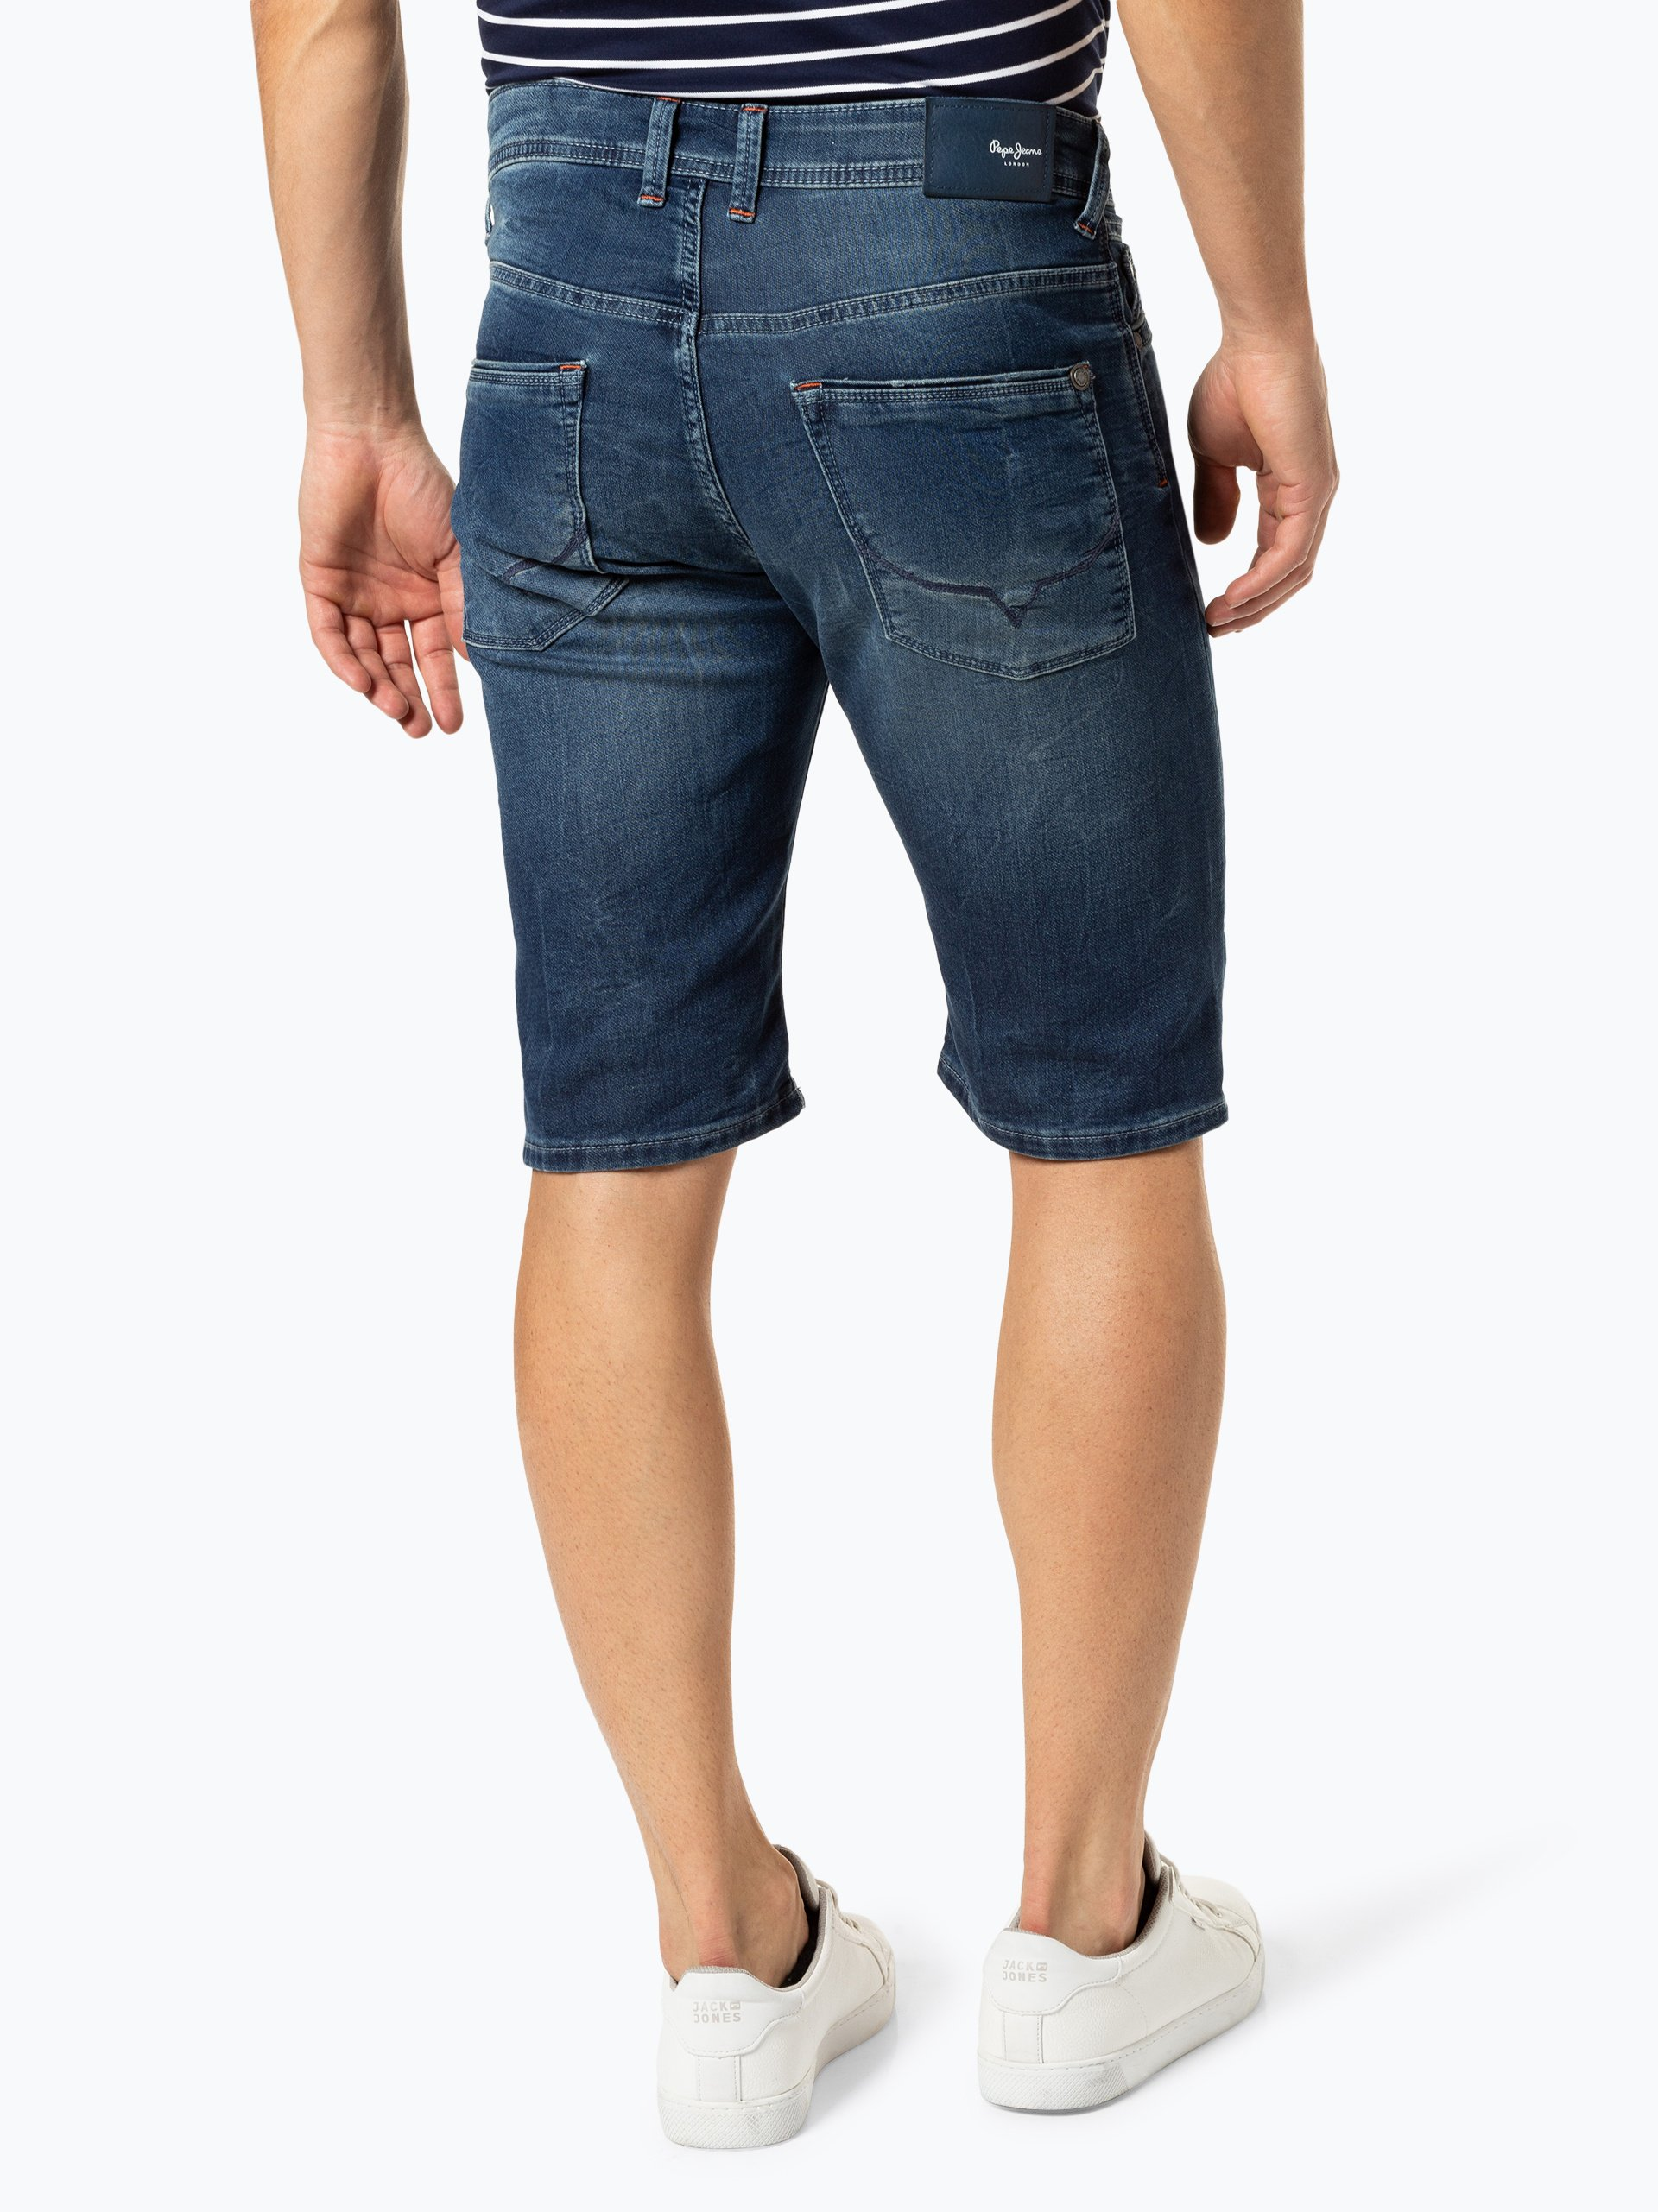 Pepe Jeans Herren Jeansshorts - Cage